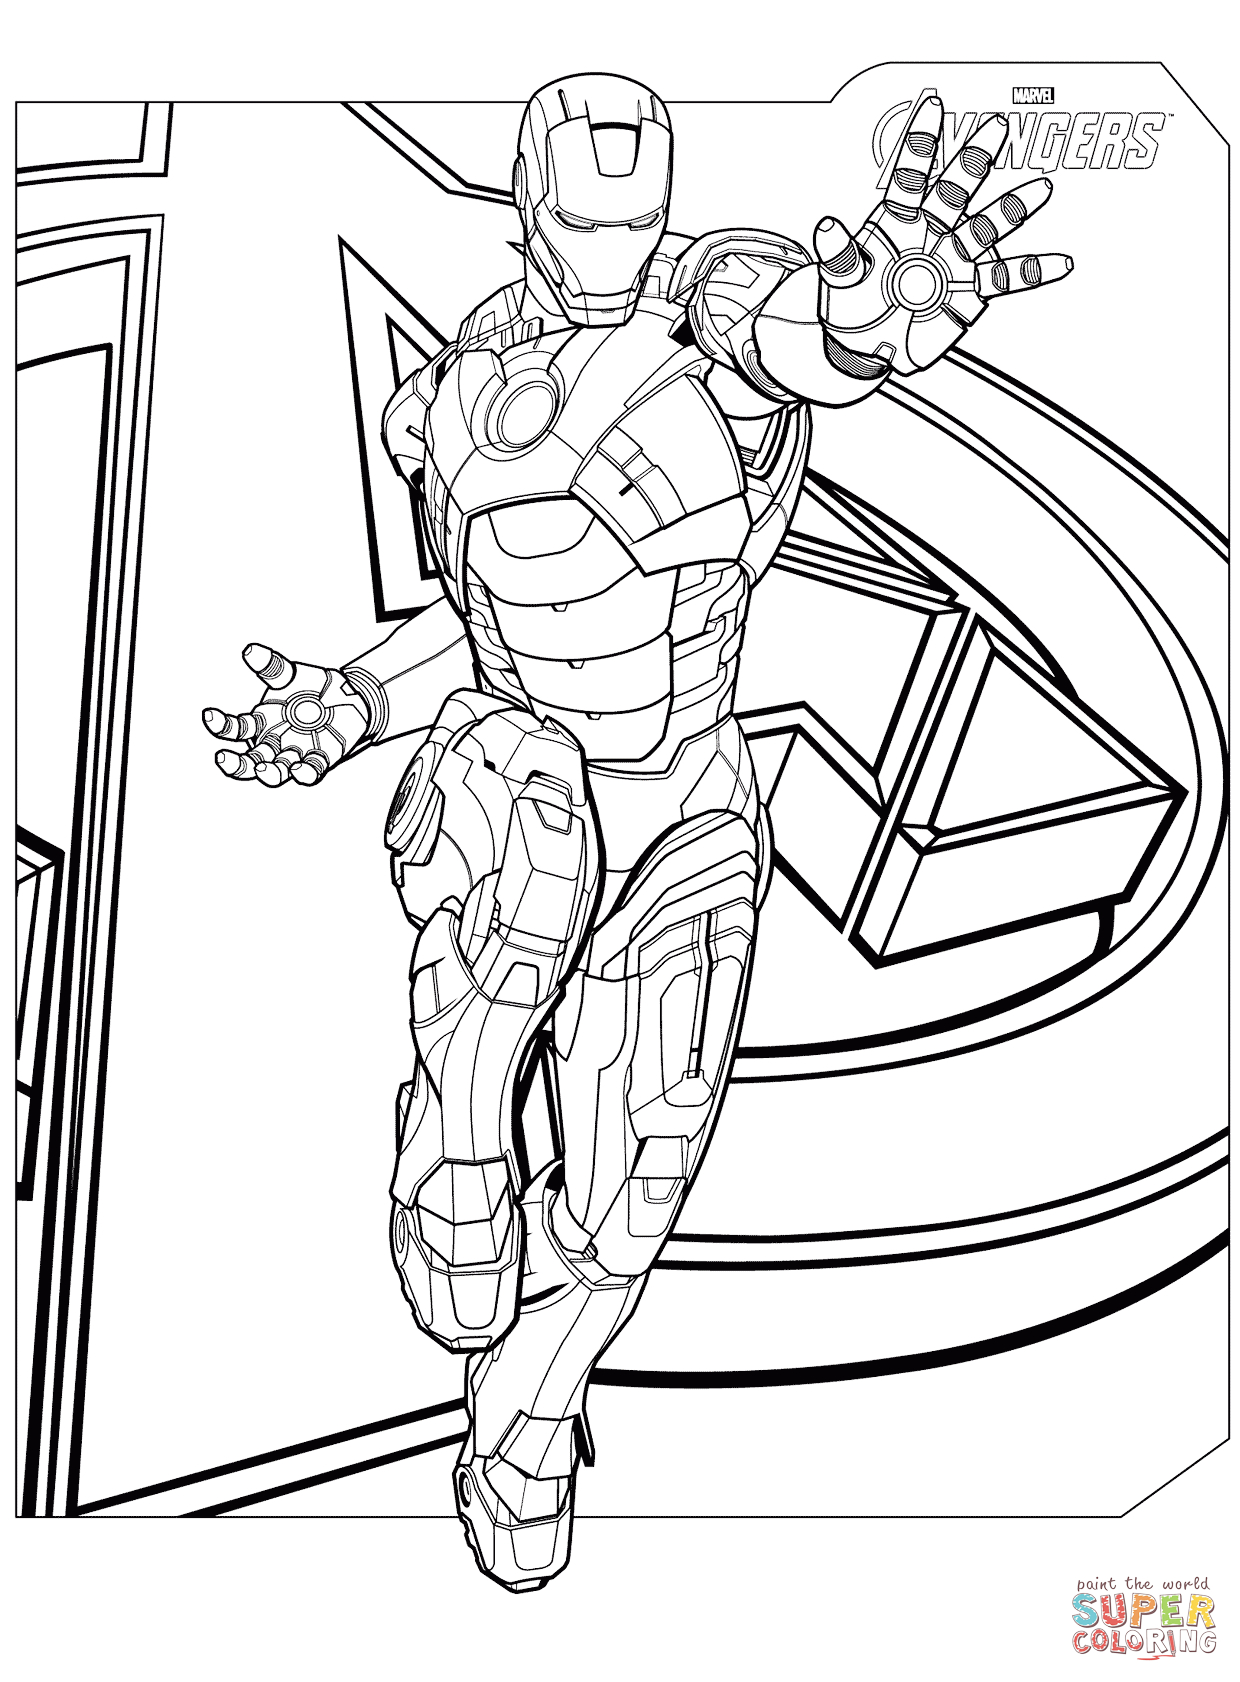 Black Widow Avengers Coloring Pages Marvels The Avengers Coloring Pages Free Coloring Pages